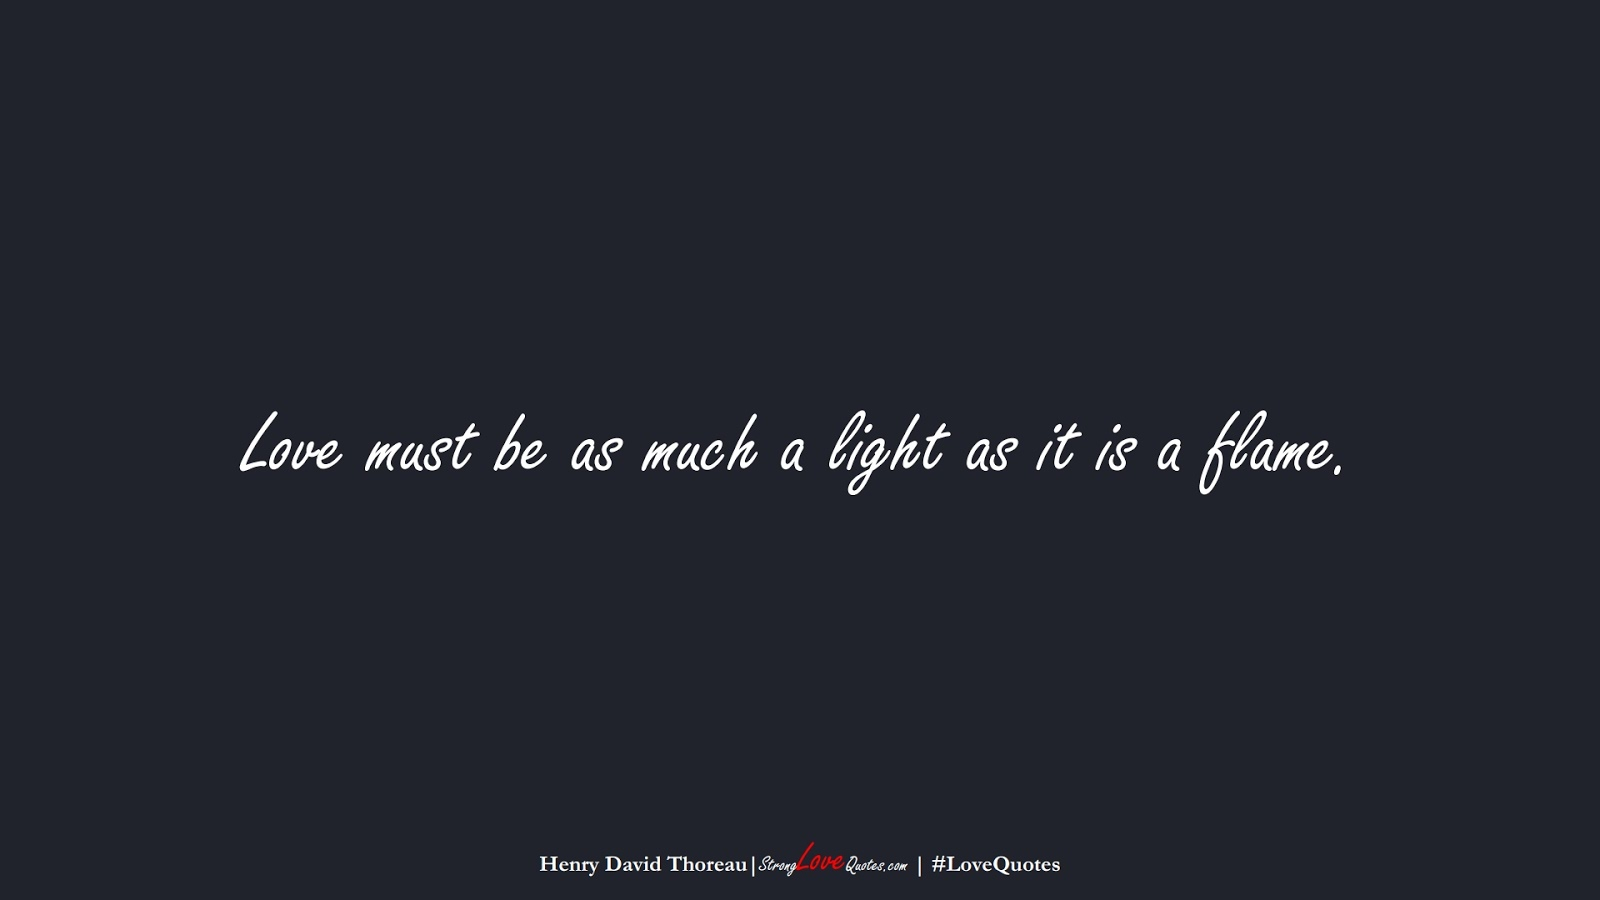 Love must be as much a light as it is a flame. (Henry David Thoreau);  #LoveQuotes